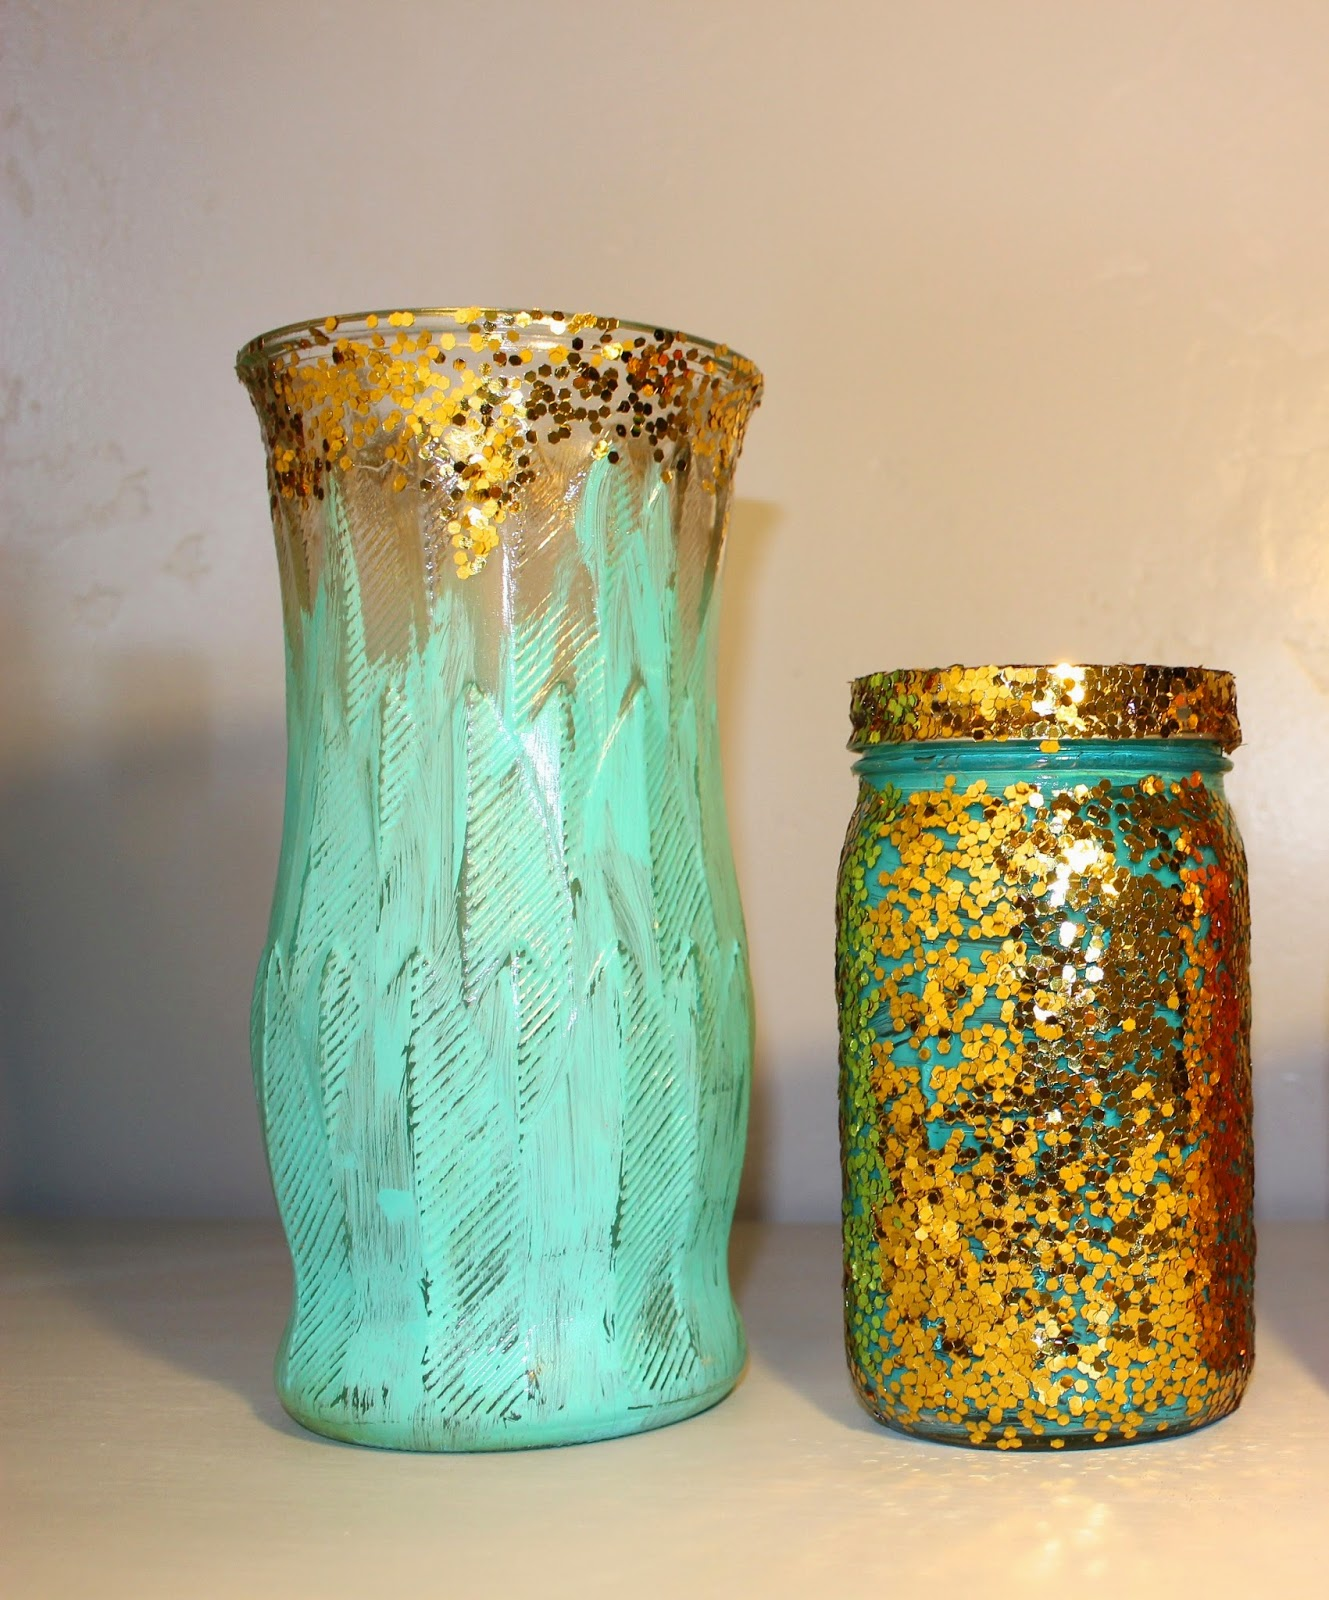 glitter and turquoise vase, large glitter vase, large handpainted vase, handpainted turquoise vase, distressed turquoise vase, glitter ombre vase, glitter vase, gold and turquoise vase, gold glitter vase, glitter mason jar, gold glitter mason jar, decorative mason jar, blue and glitter mason jar, handpainted mason jar, sparkly mason jar, wedding glitter decor, glitter decor, gold decor